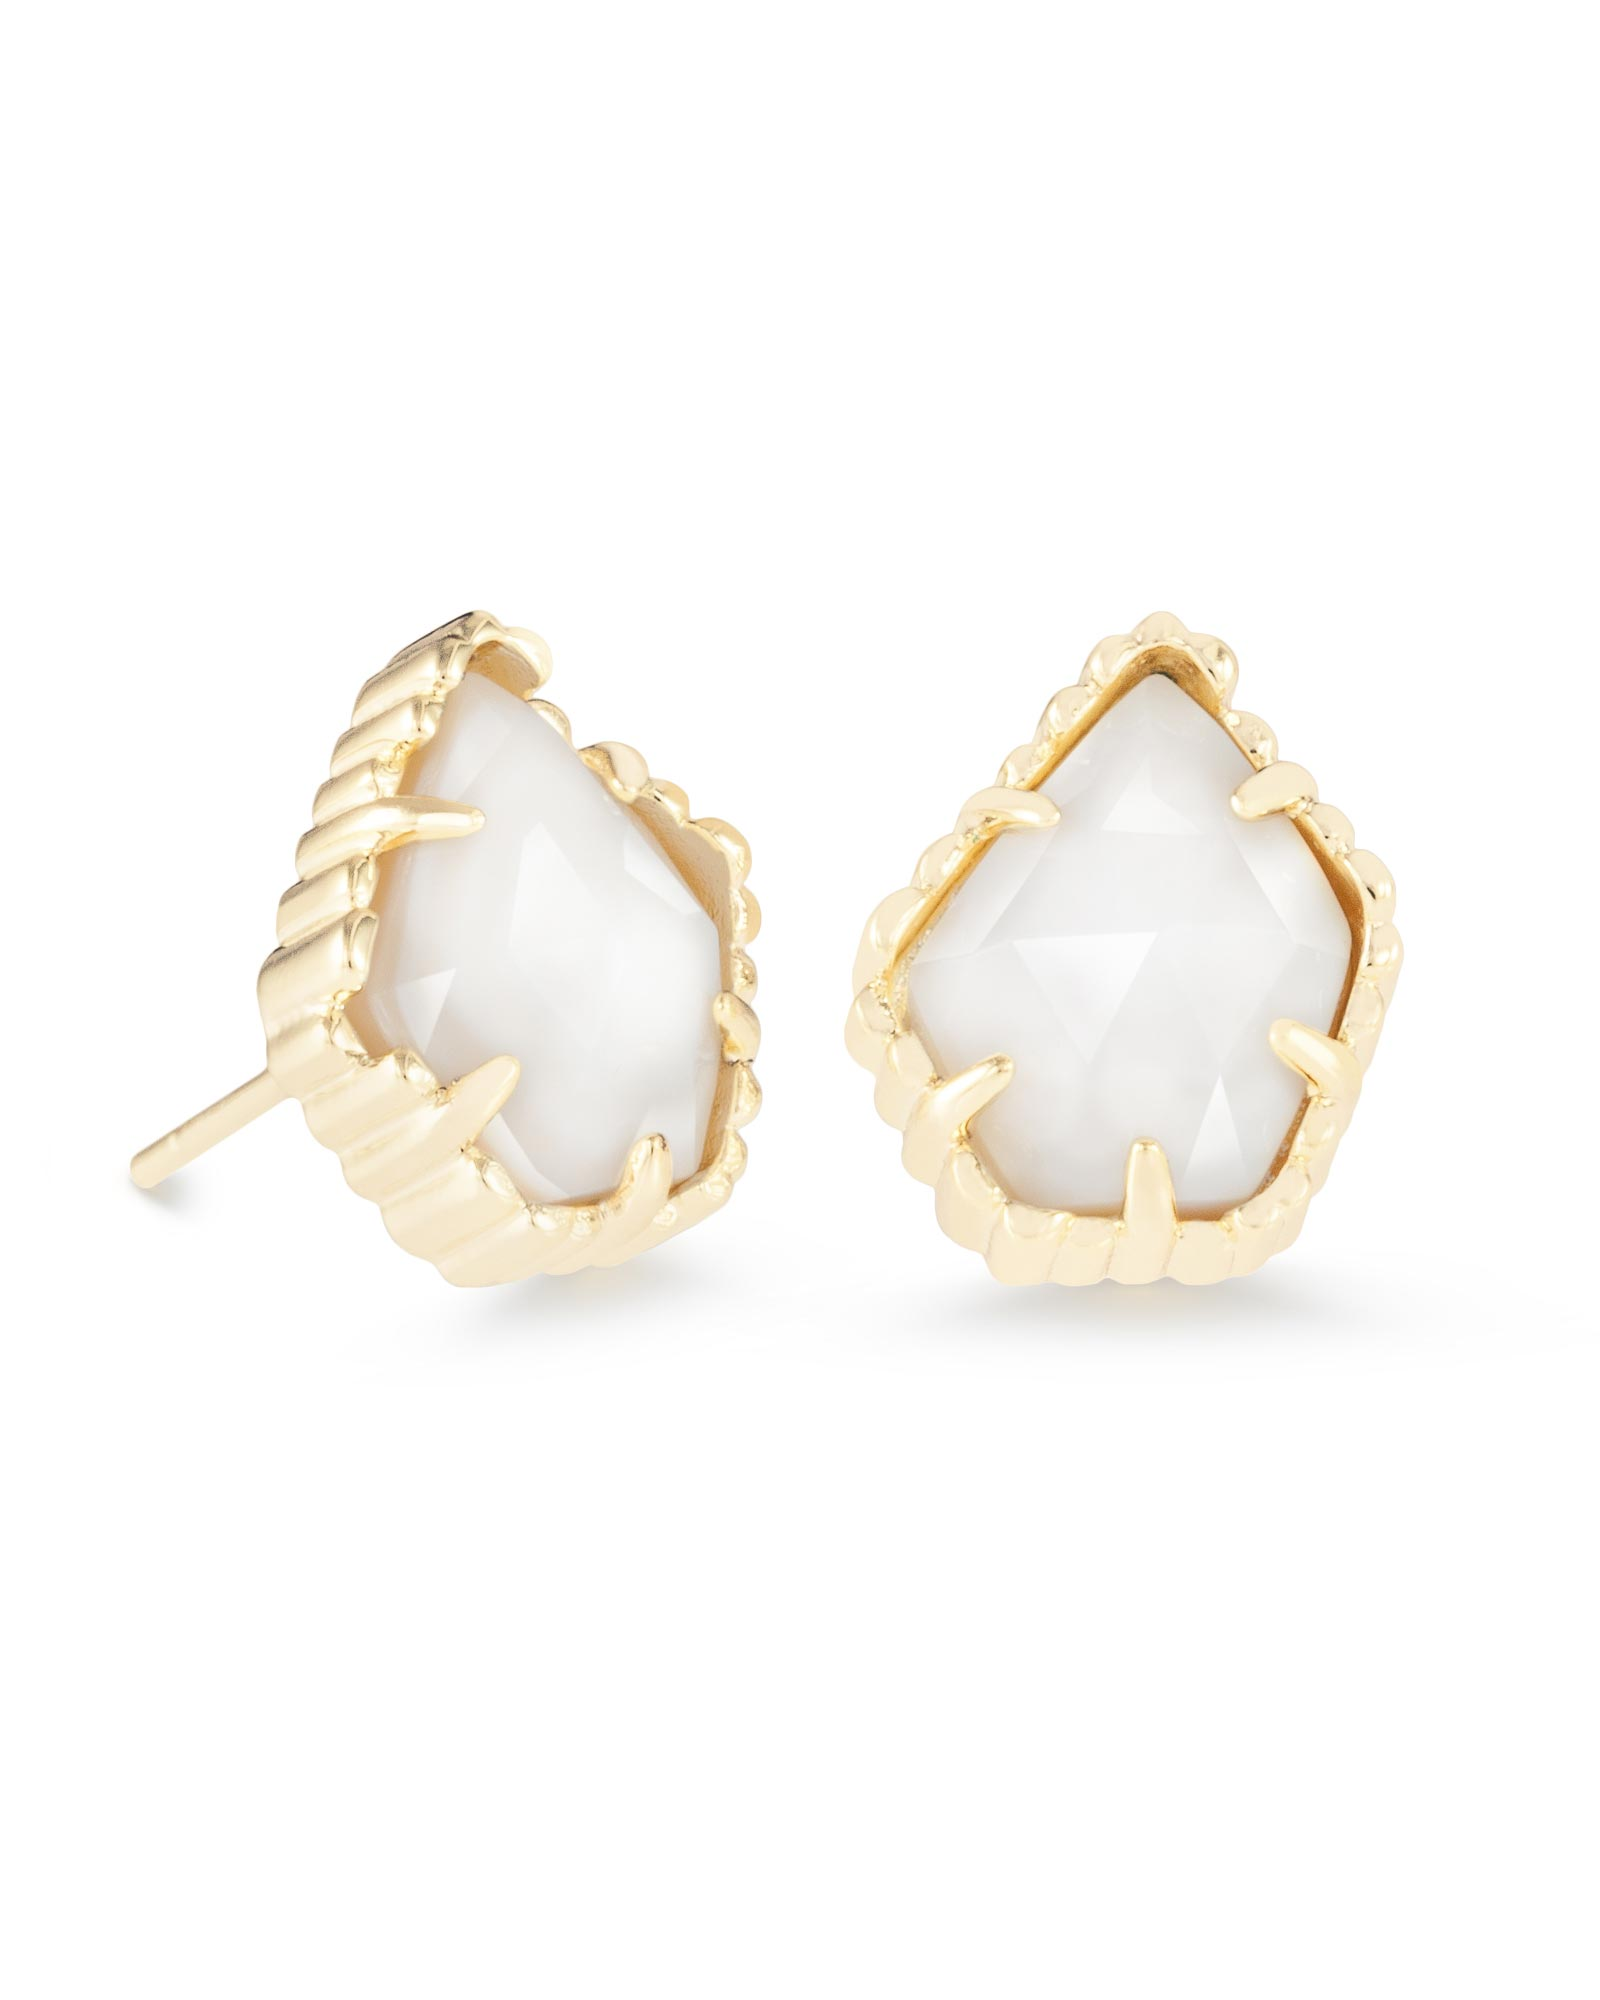 Tessa Stud Earrings in White Pearl